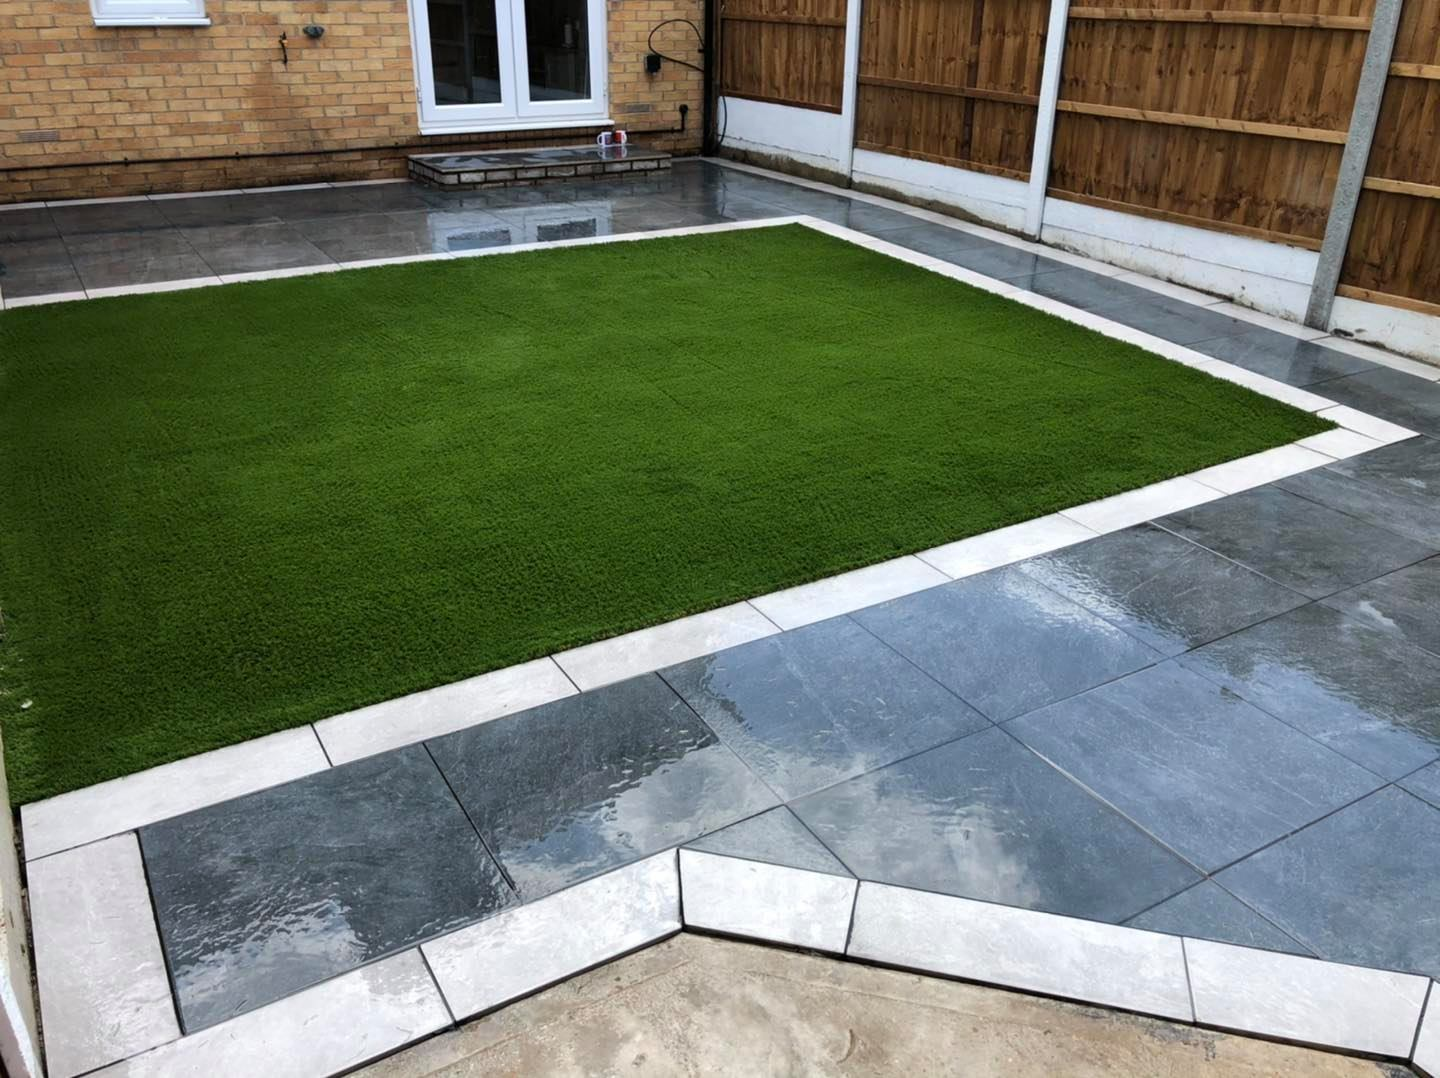 Infinity Home & Paving